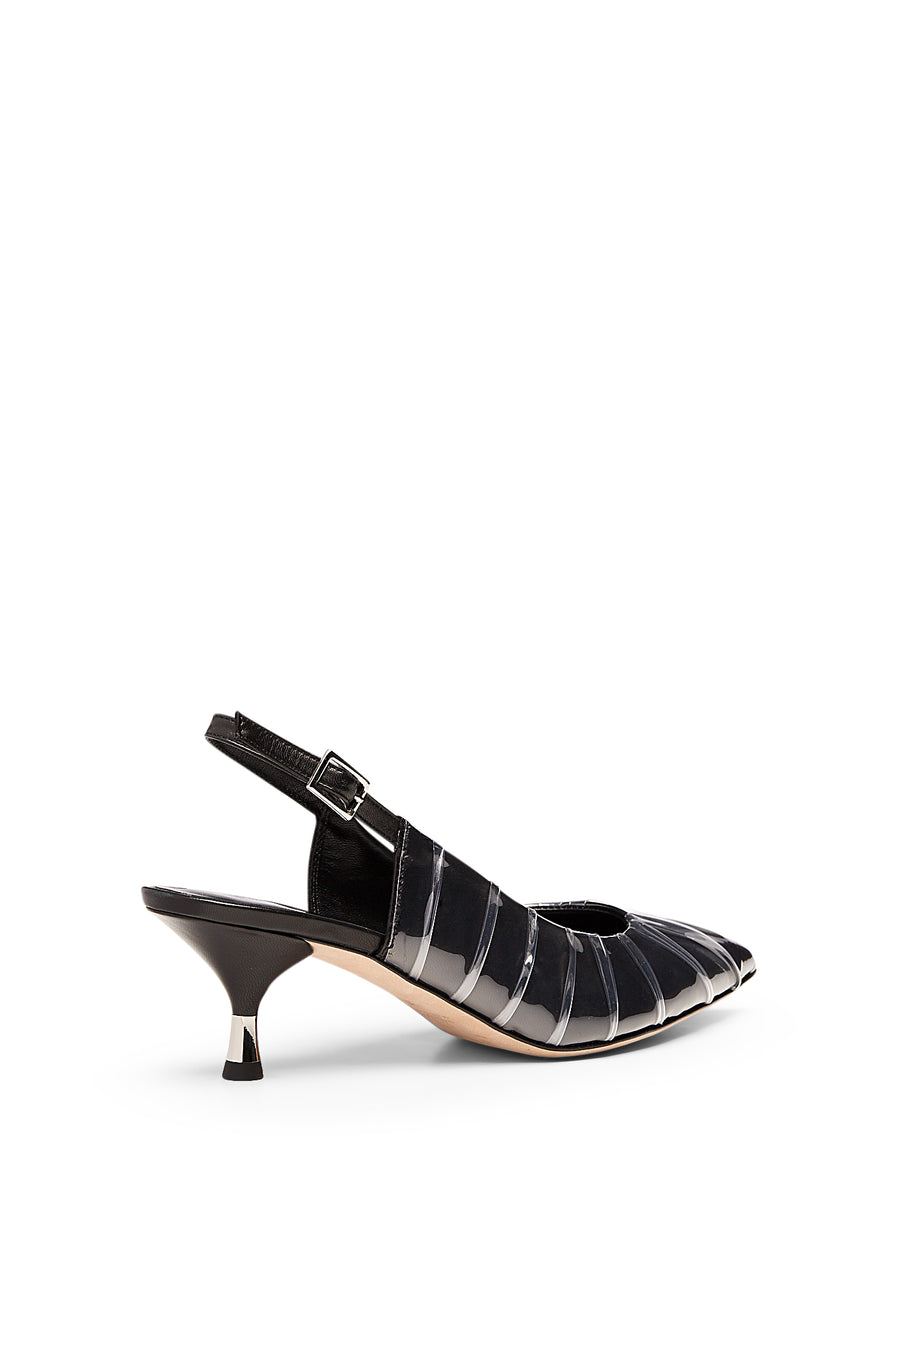 TUCKED SLINGBACK 5.5 NERO, NERO color